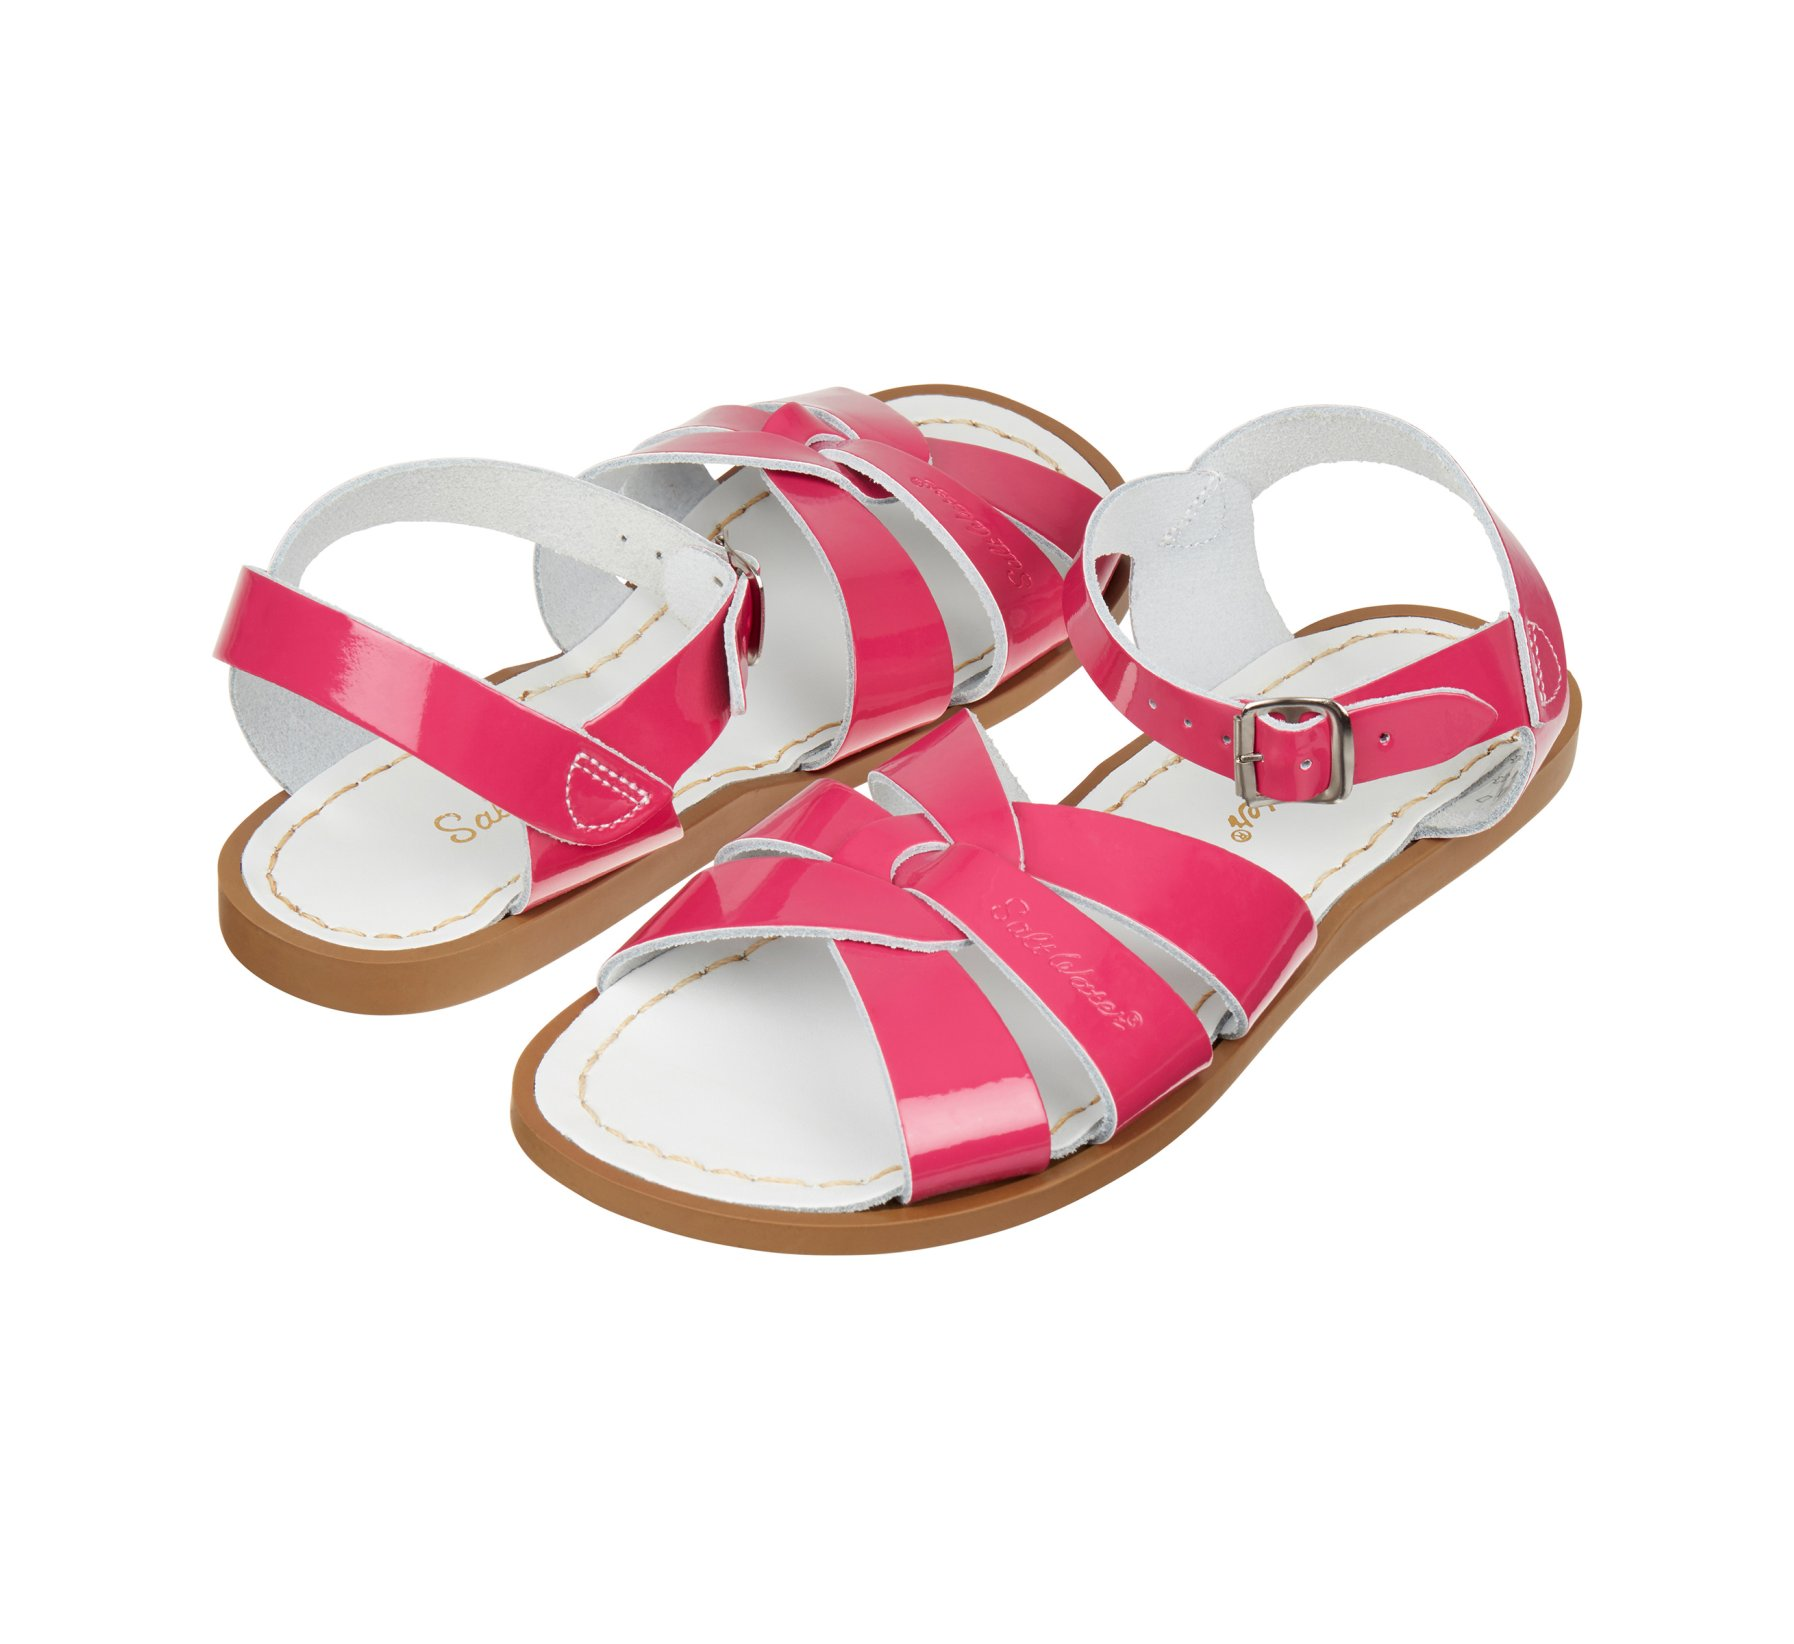 Original Fuchsia Berkilat - Salt Water Sandals